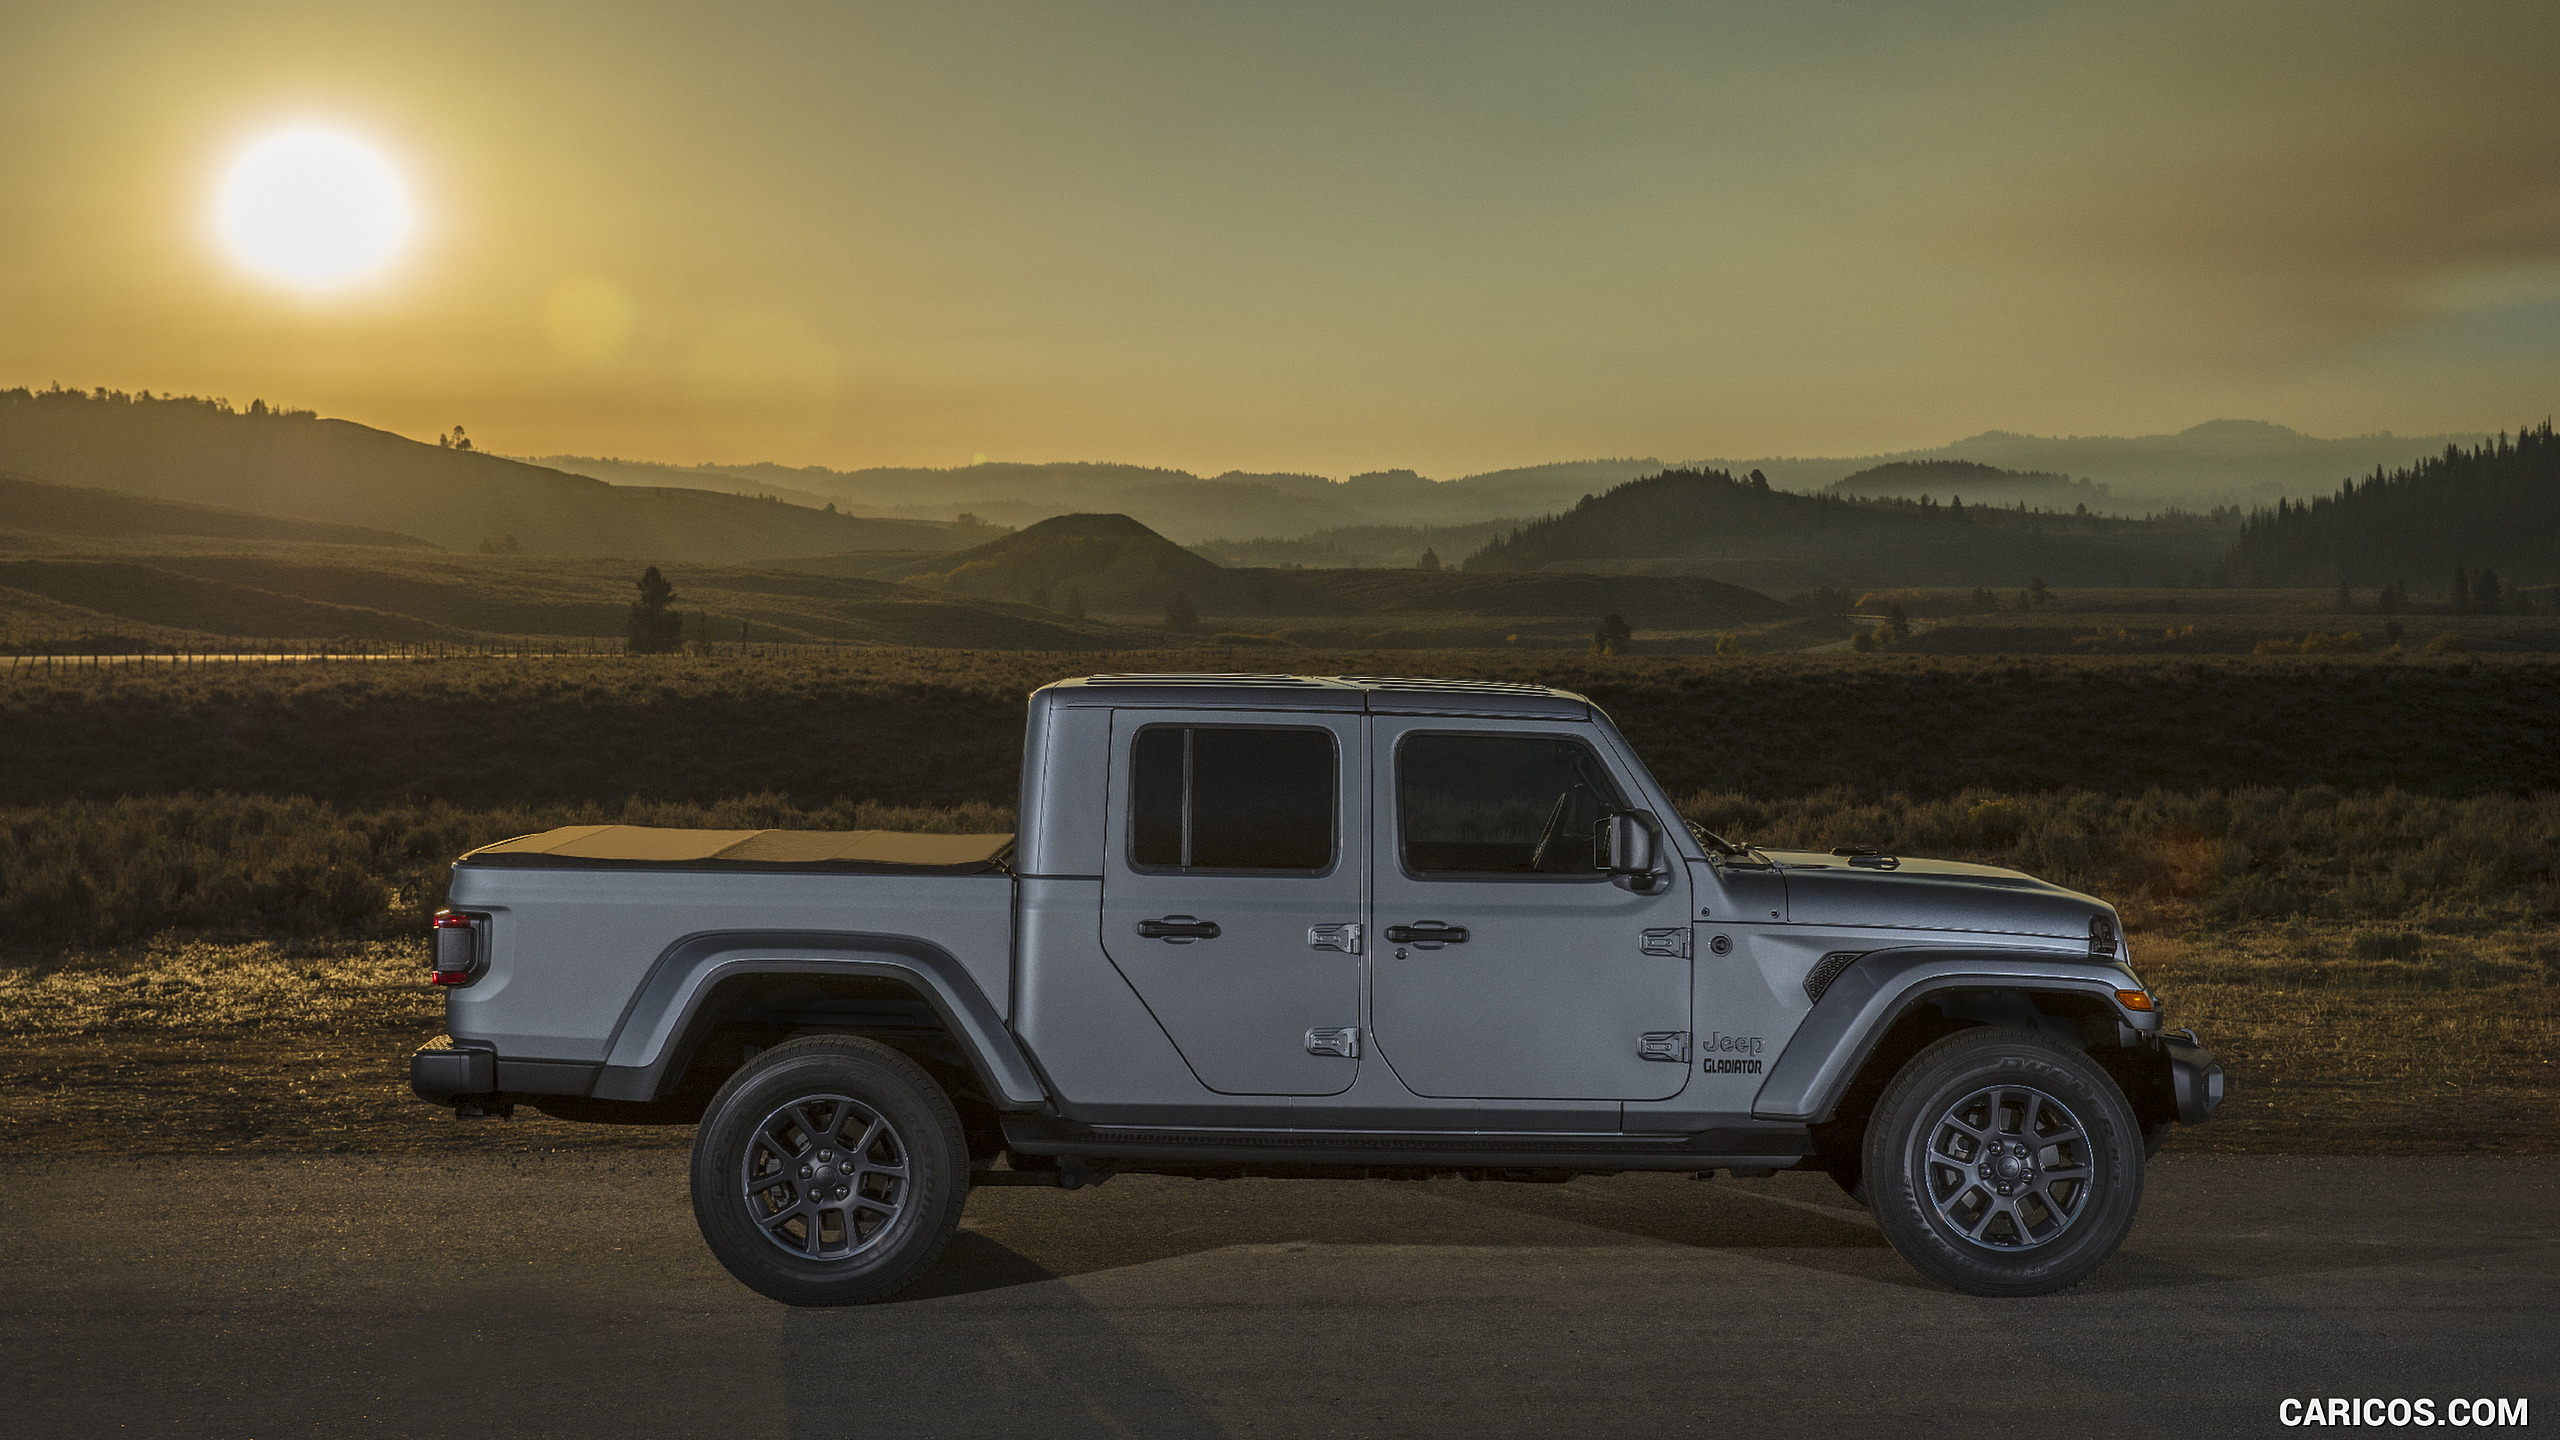 2020 Jeep Gladiator Overland   Side HD Wallpaper 194 2560x1440